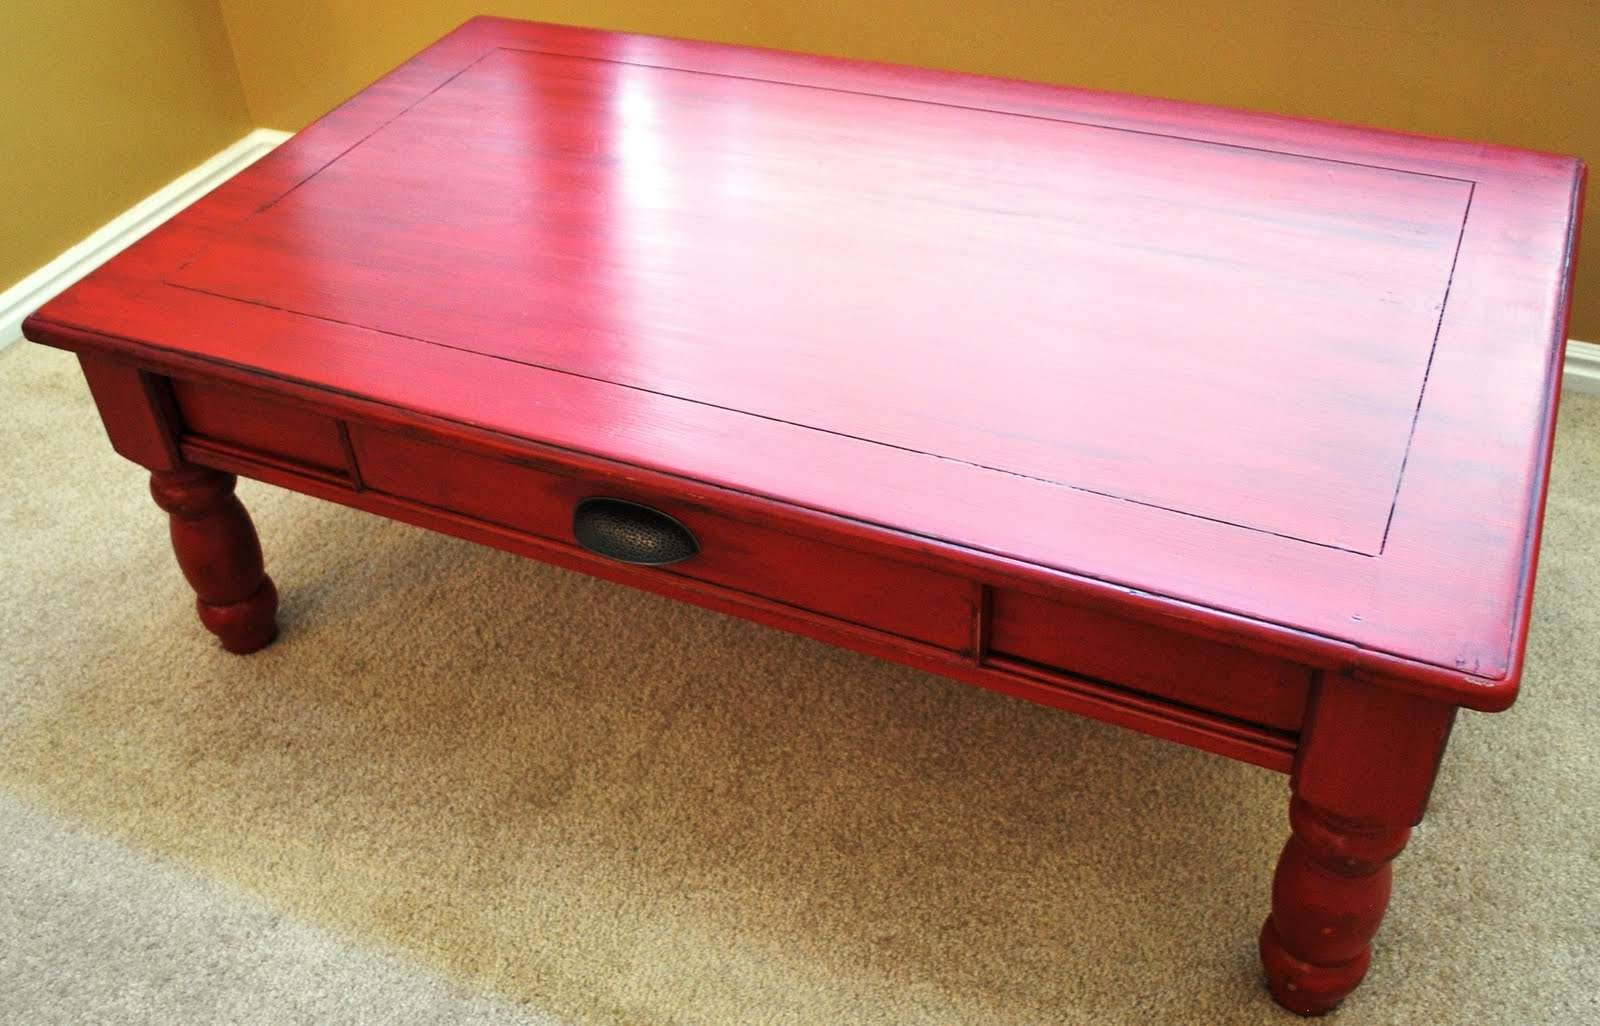 Red Coffee Table For Most Recently Released Round Red Coffee Tables (View 16 of 20)